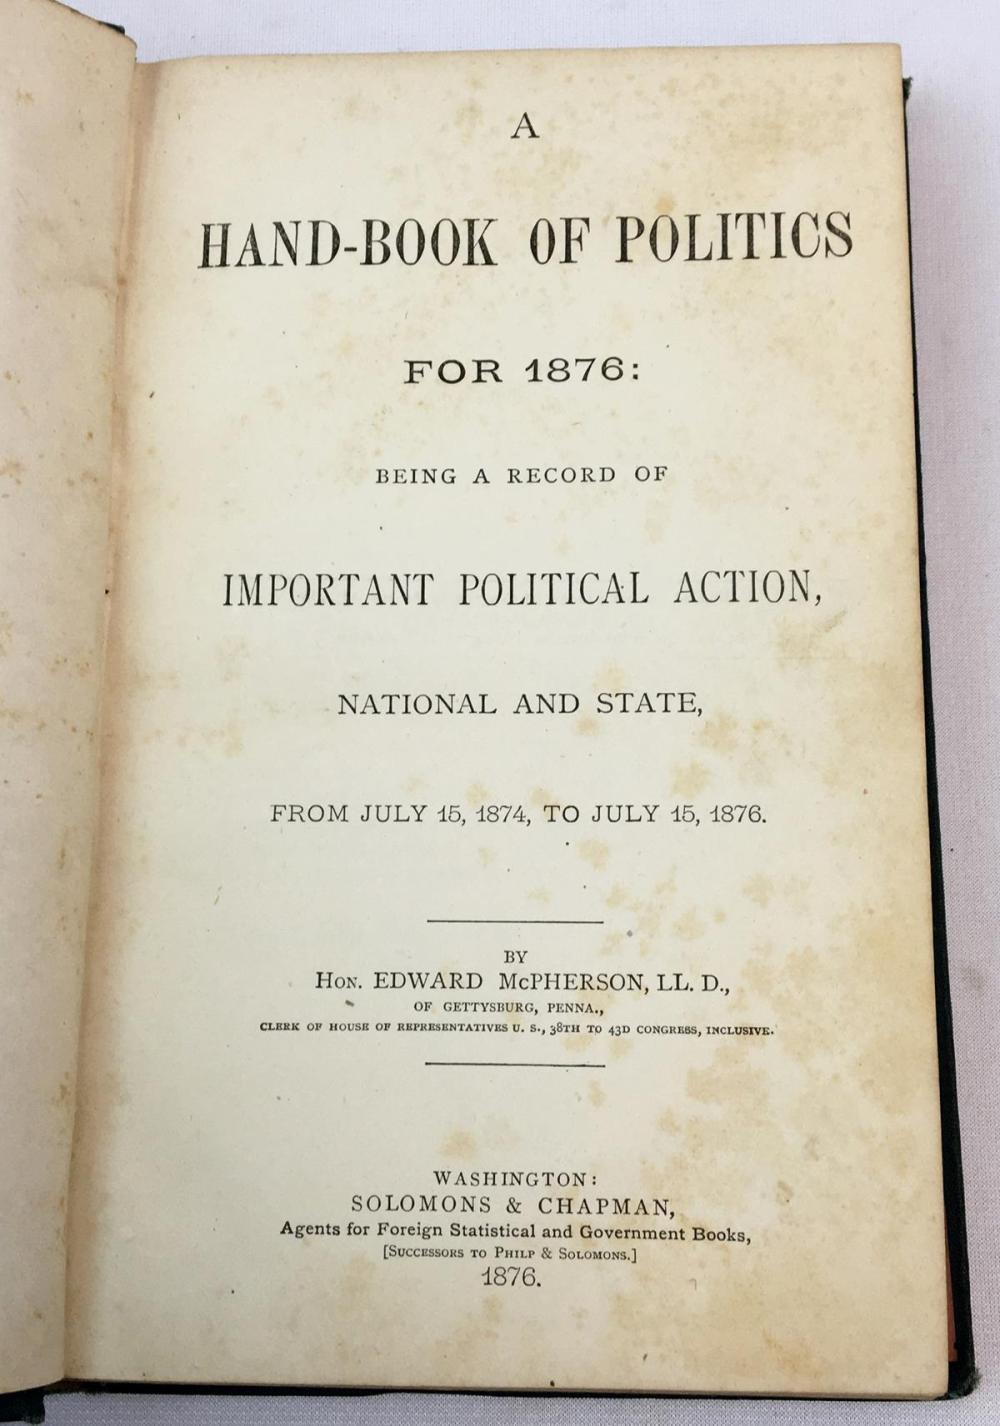 A Handbook of Politics For 1876 - Being A Record of Important Political Action by Edward McPherson FIRST EDITION